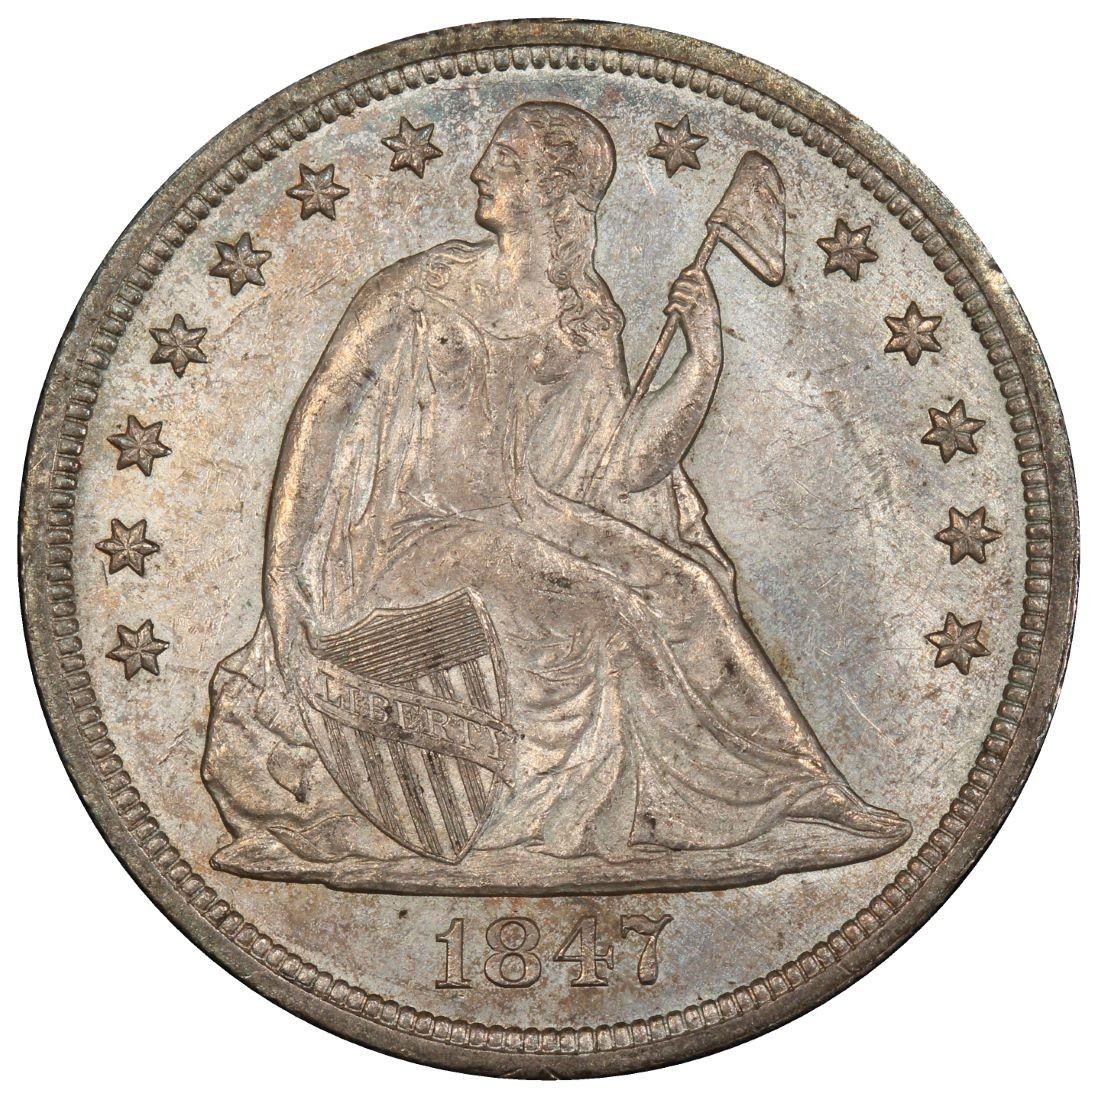 1847 Seated Liberty Silver Dollar Values and Prices - Past